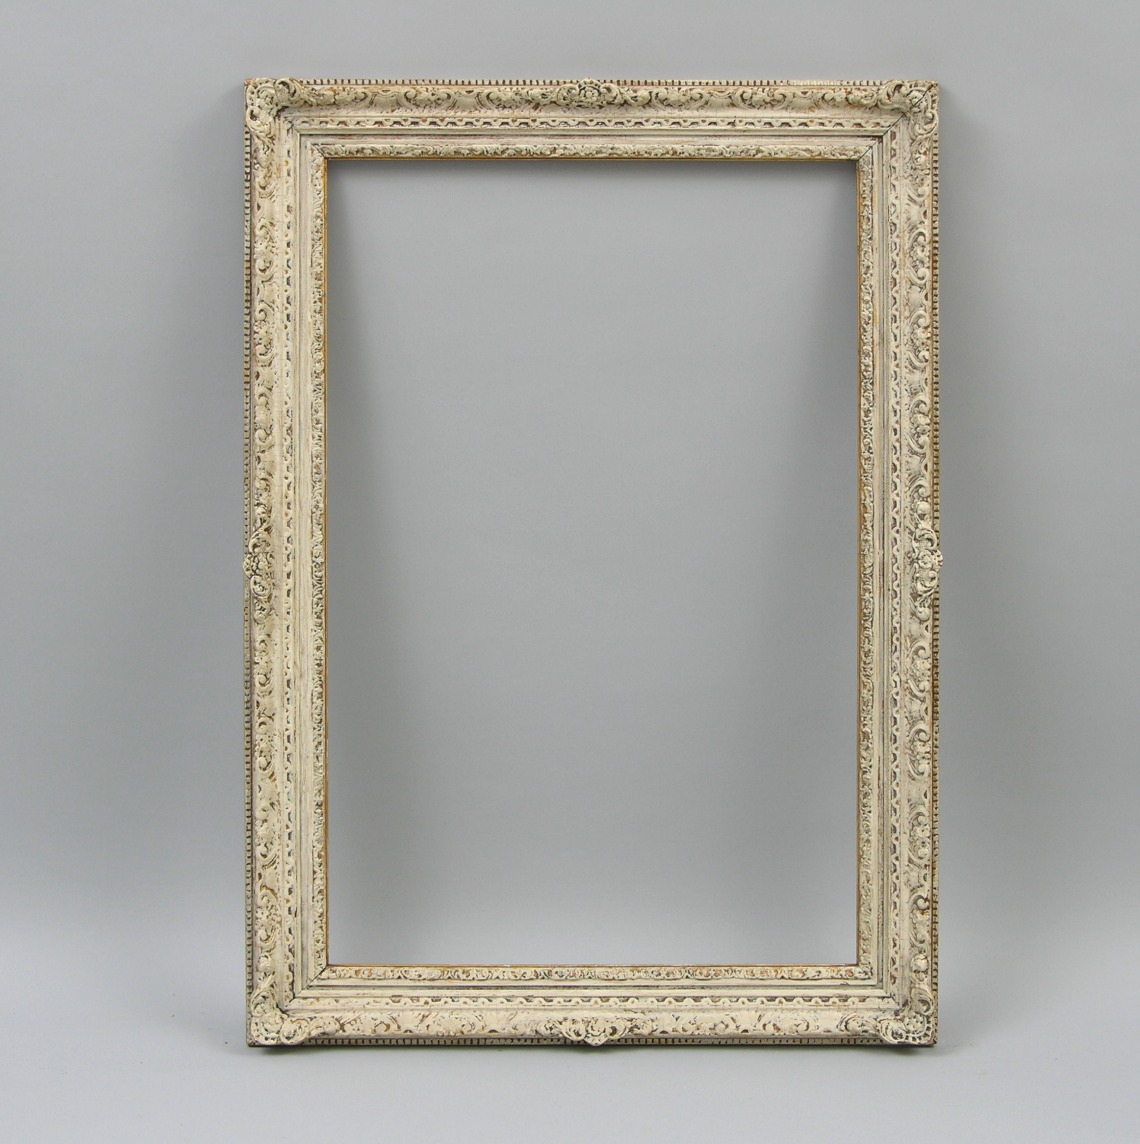 A Vintage French Style Frame, 03.07.09, Sold: USD46